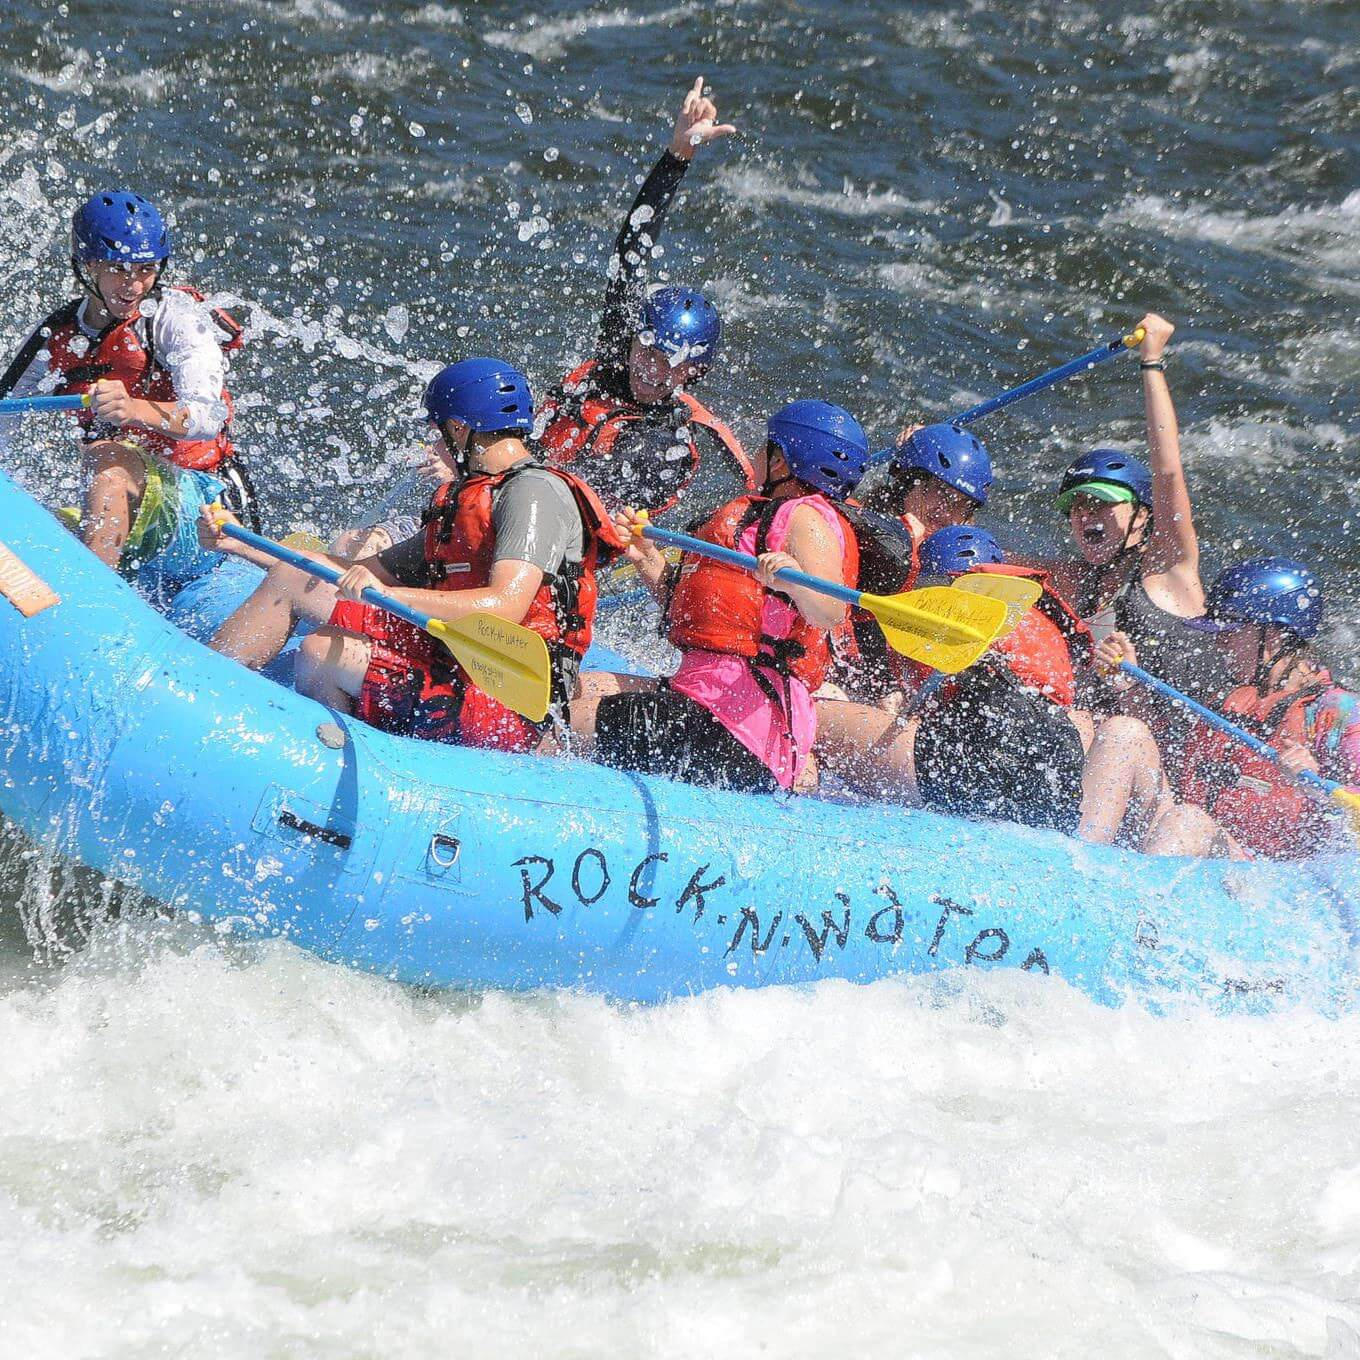 Whitewater raft splashing through river rapids with campers on board